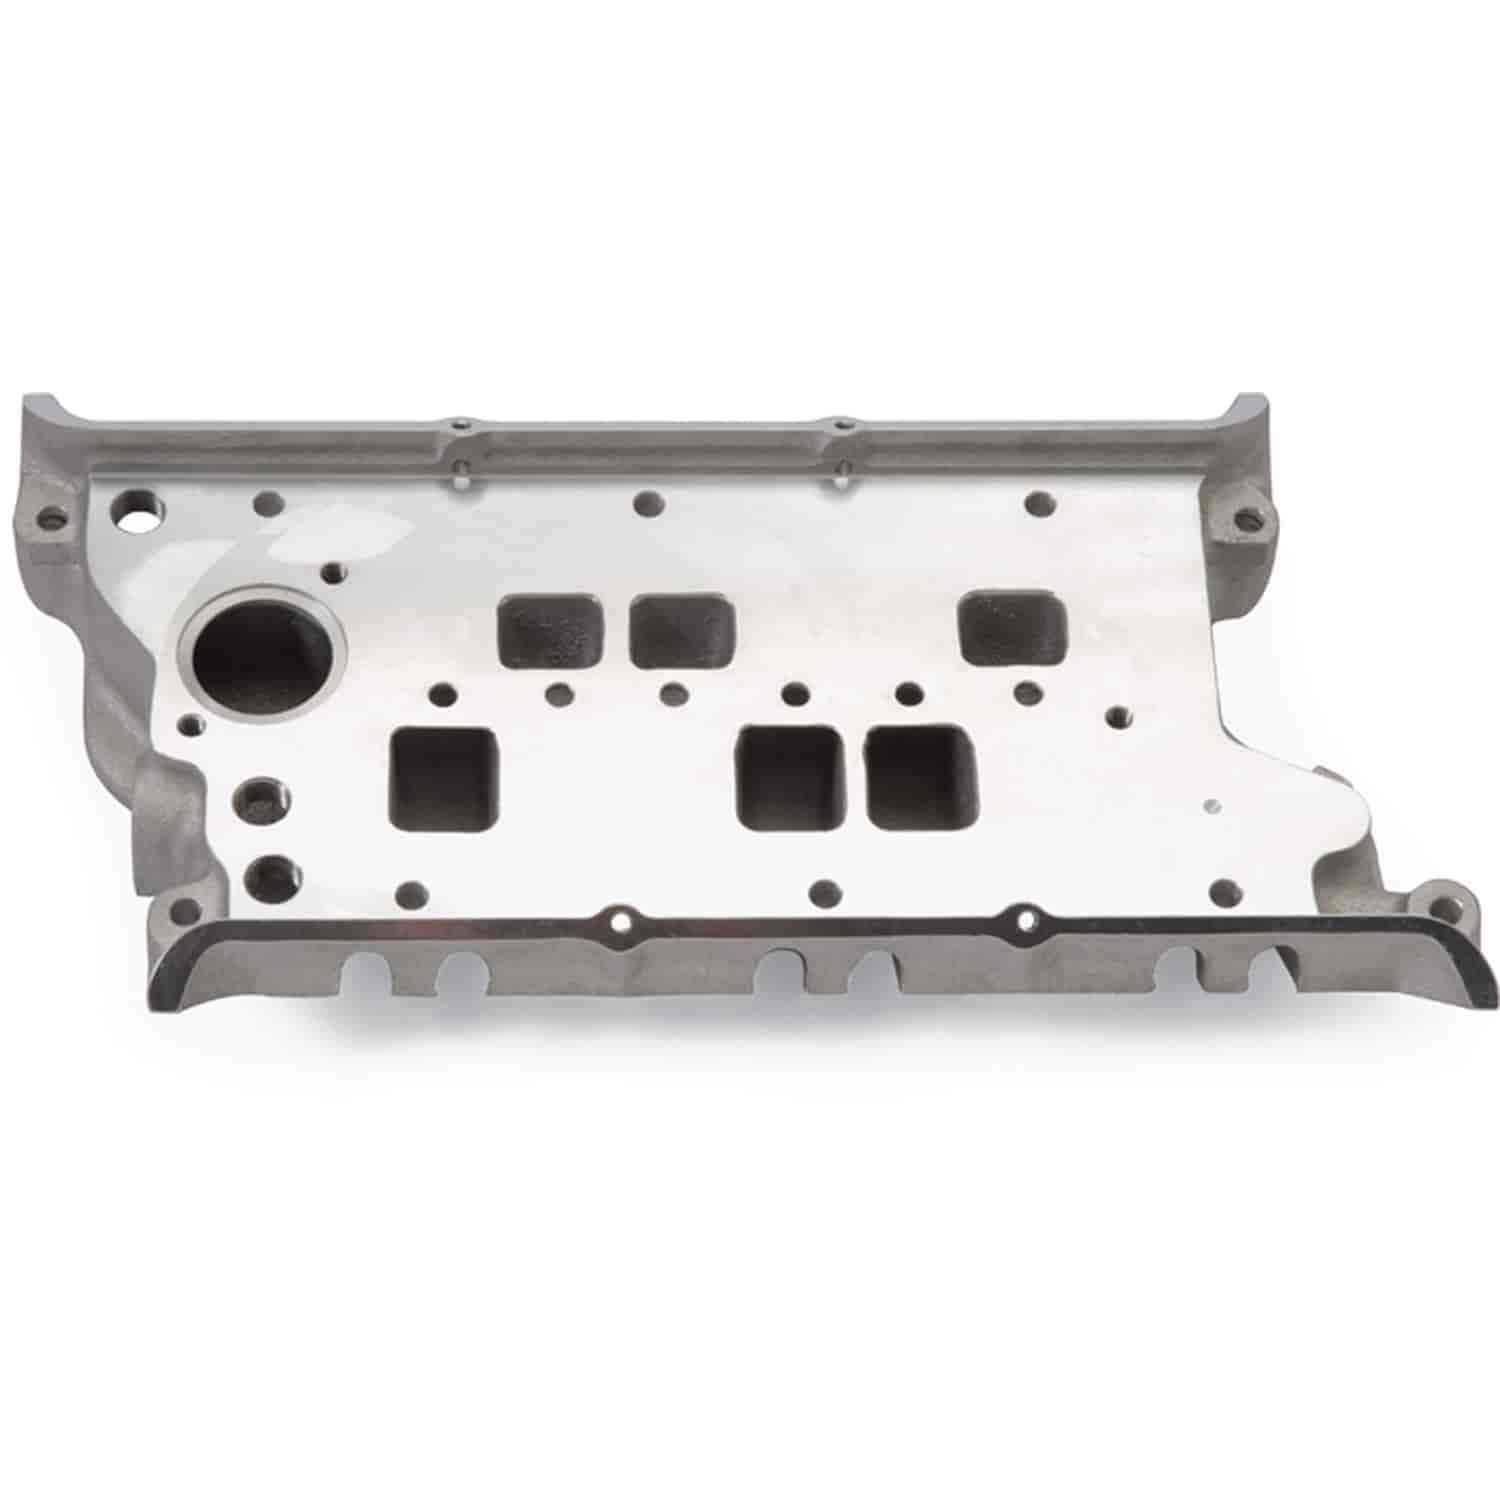 Edelbrock 3785 - Edelbrock Performer Intake Manifolds for Chevy